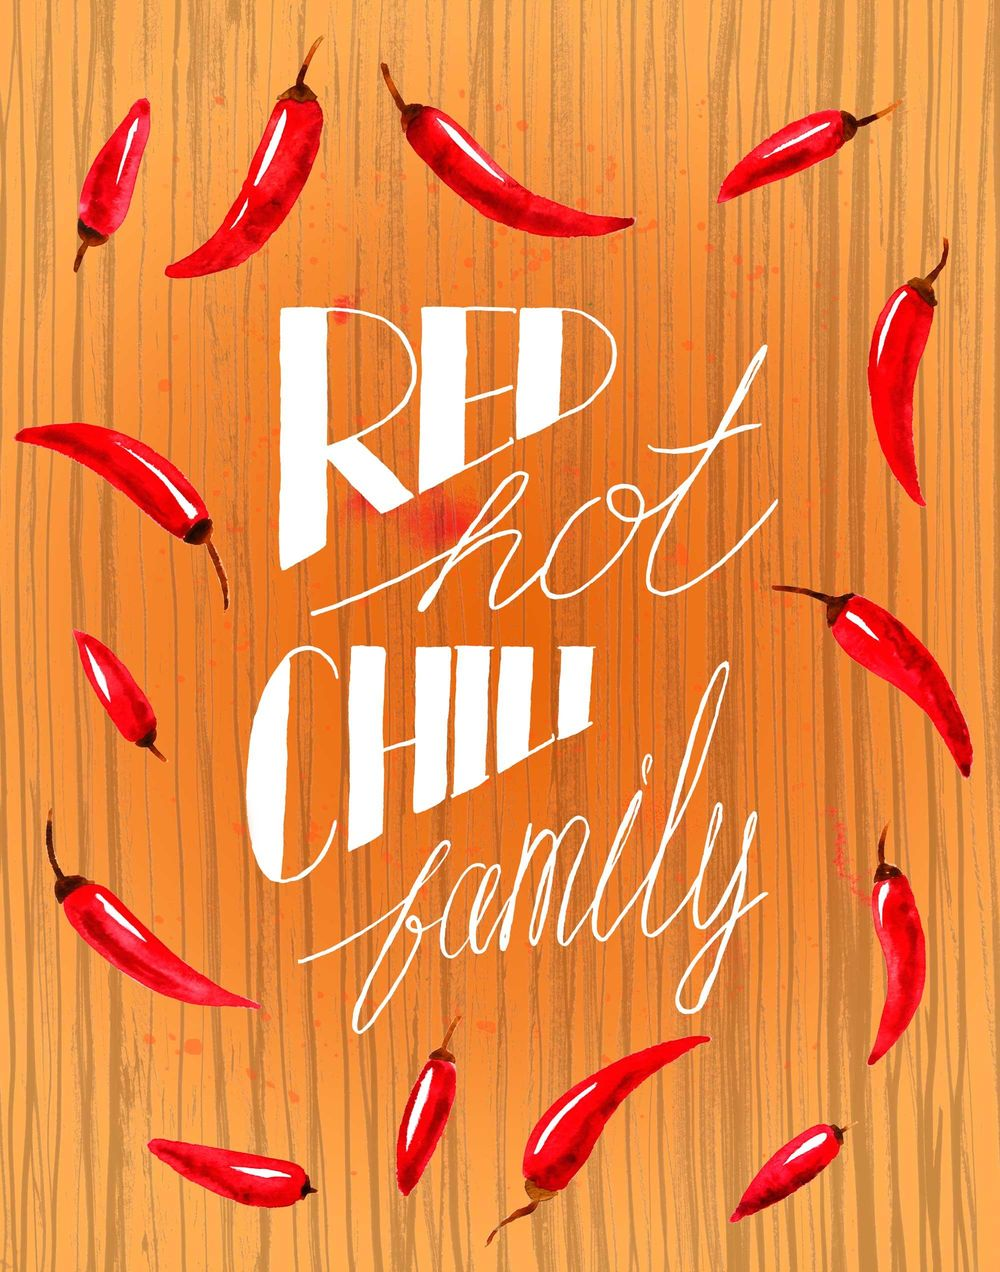 Red Hot Chili Family - image 9 - student project